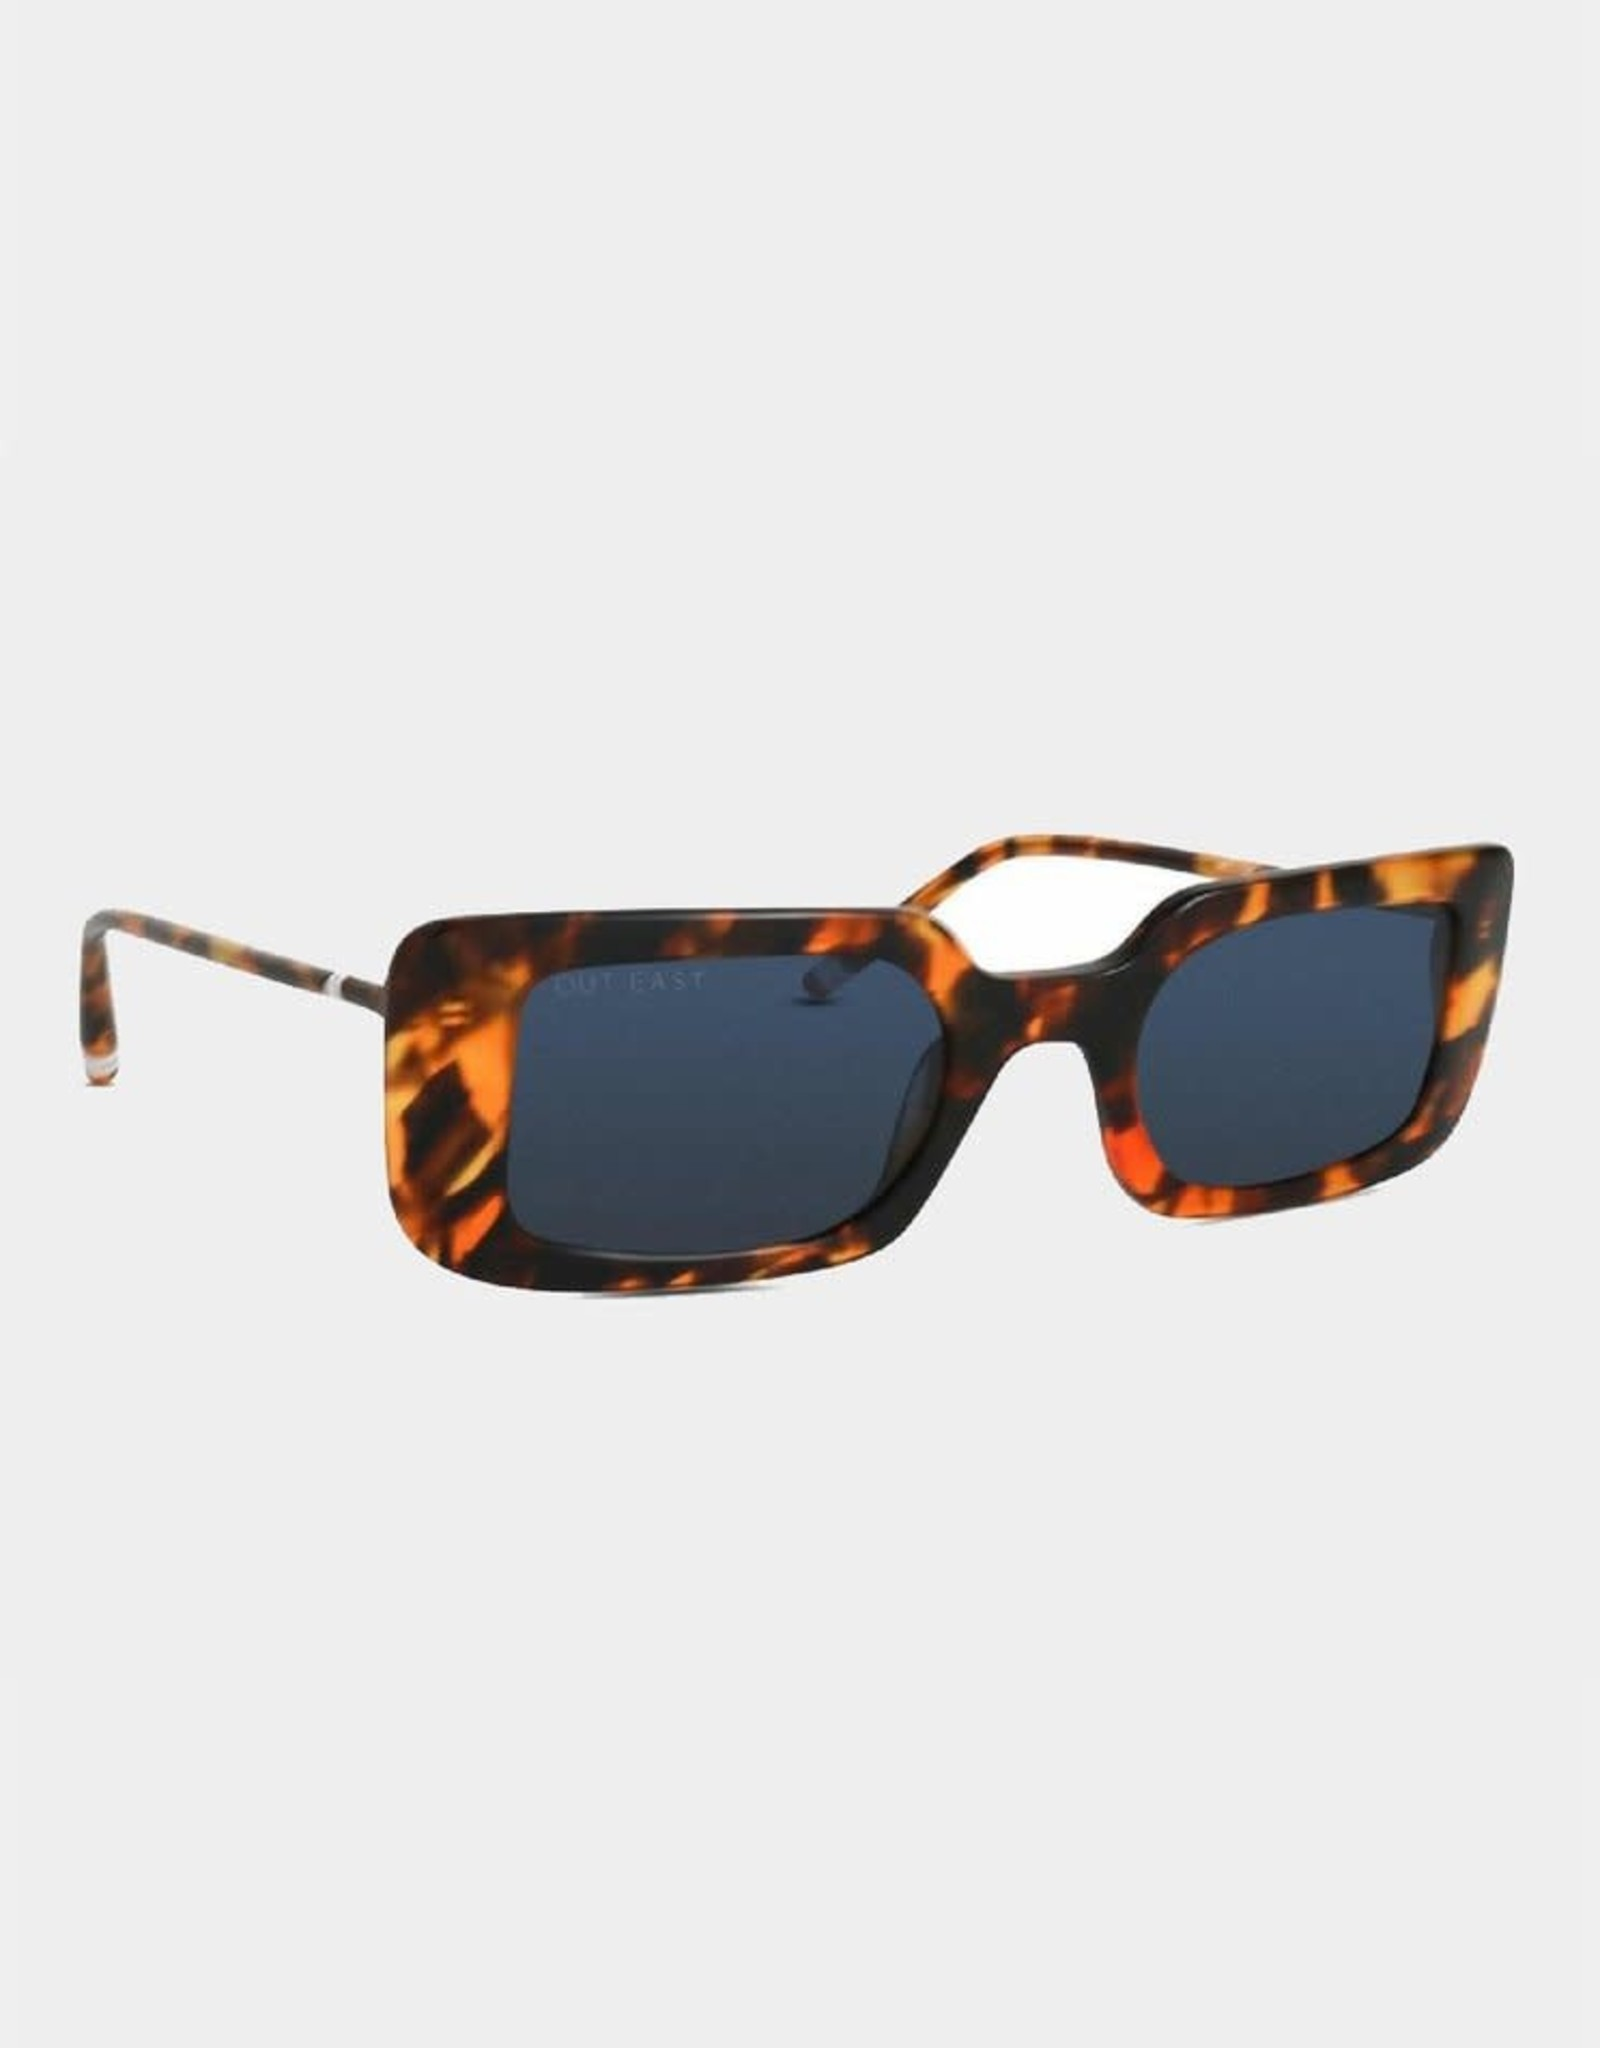 Out East Eyewear Willow Shades